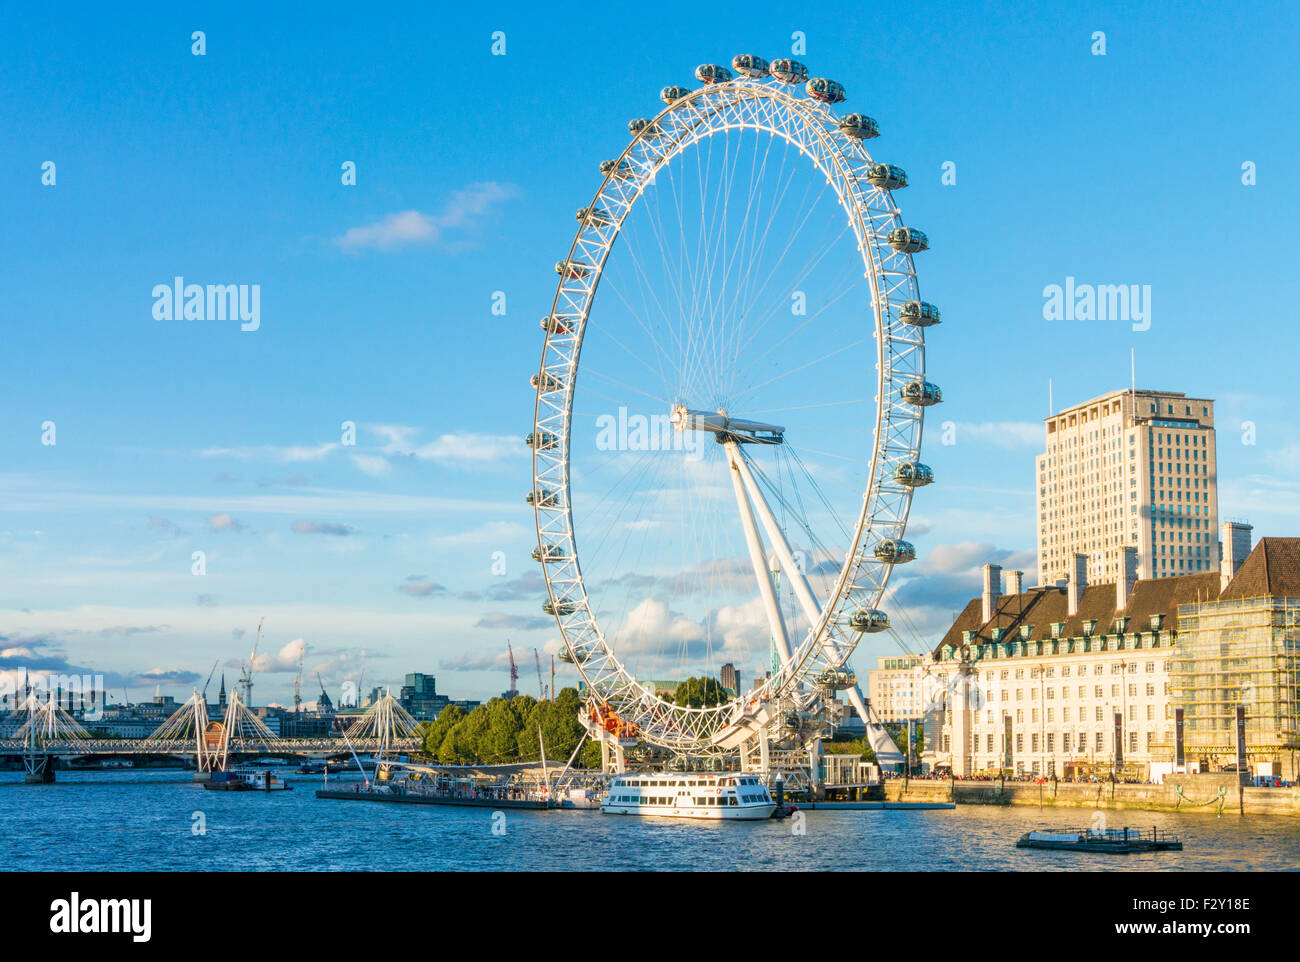 the london eye is a big ferris wheel carousel on the south bank of